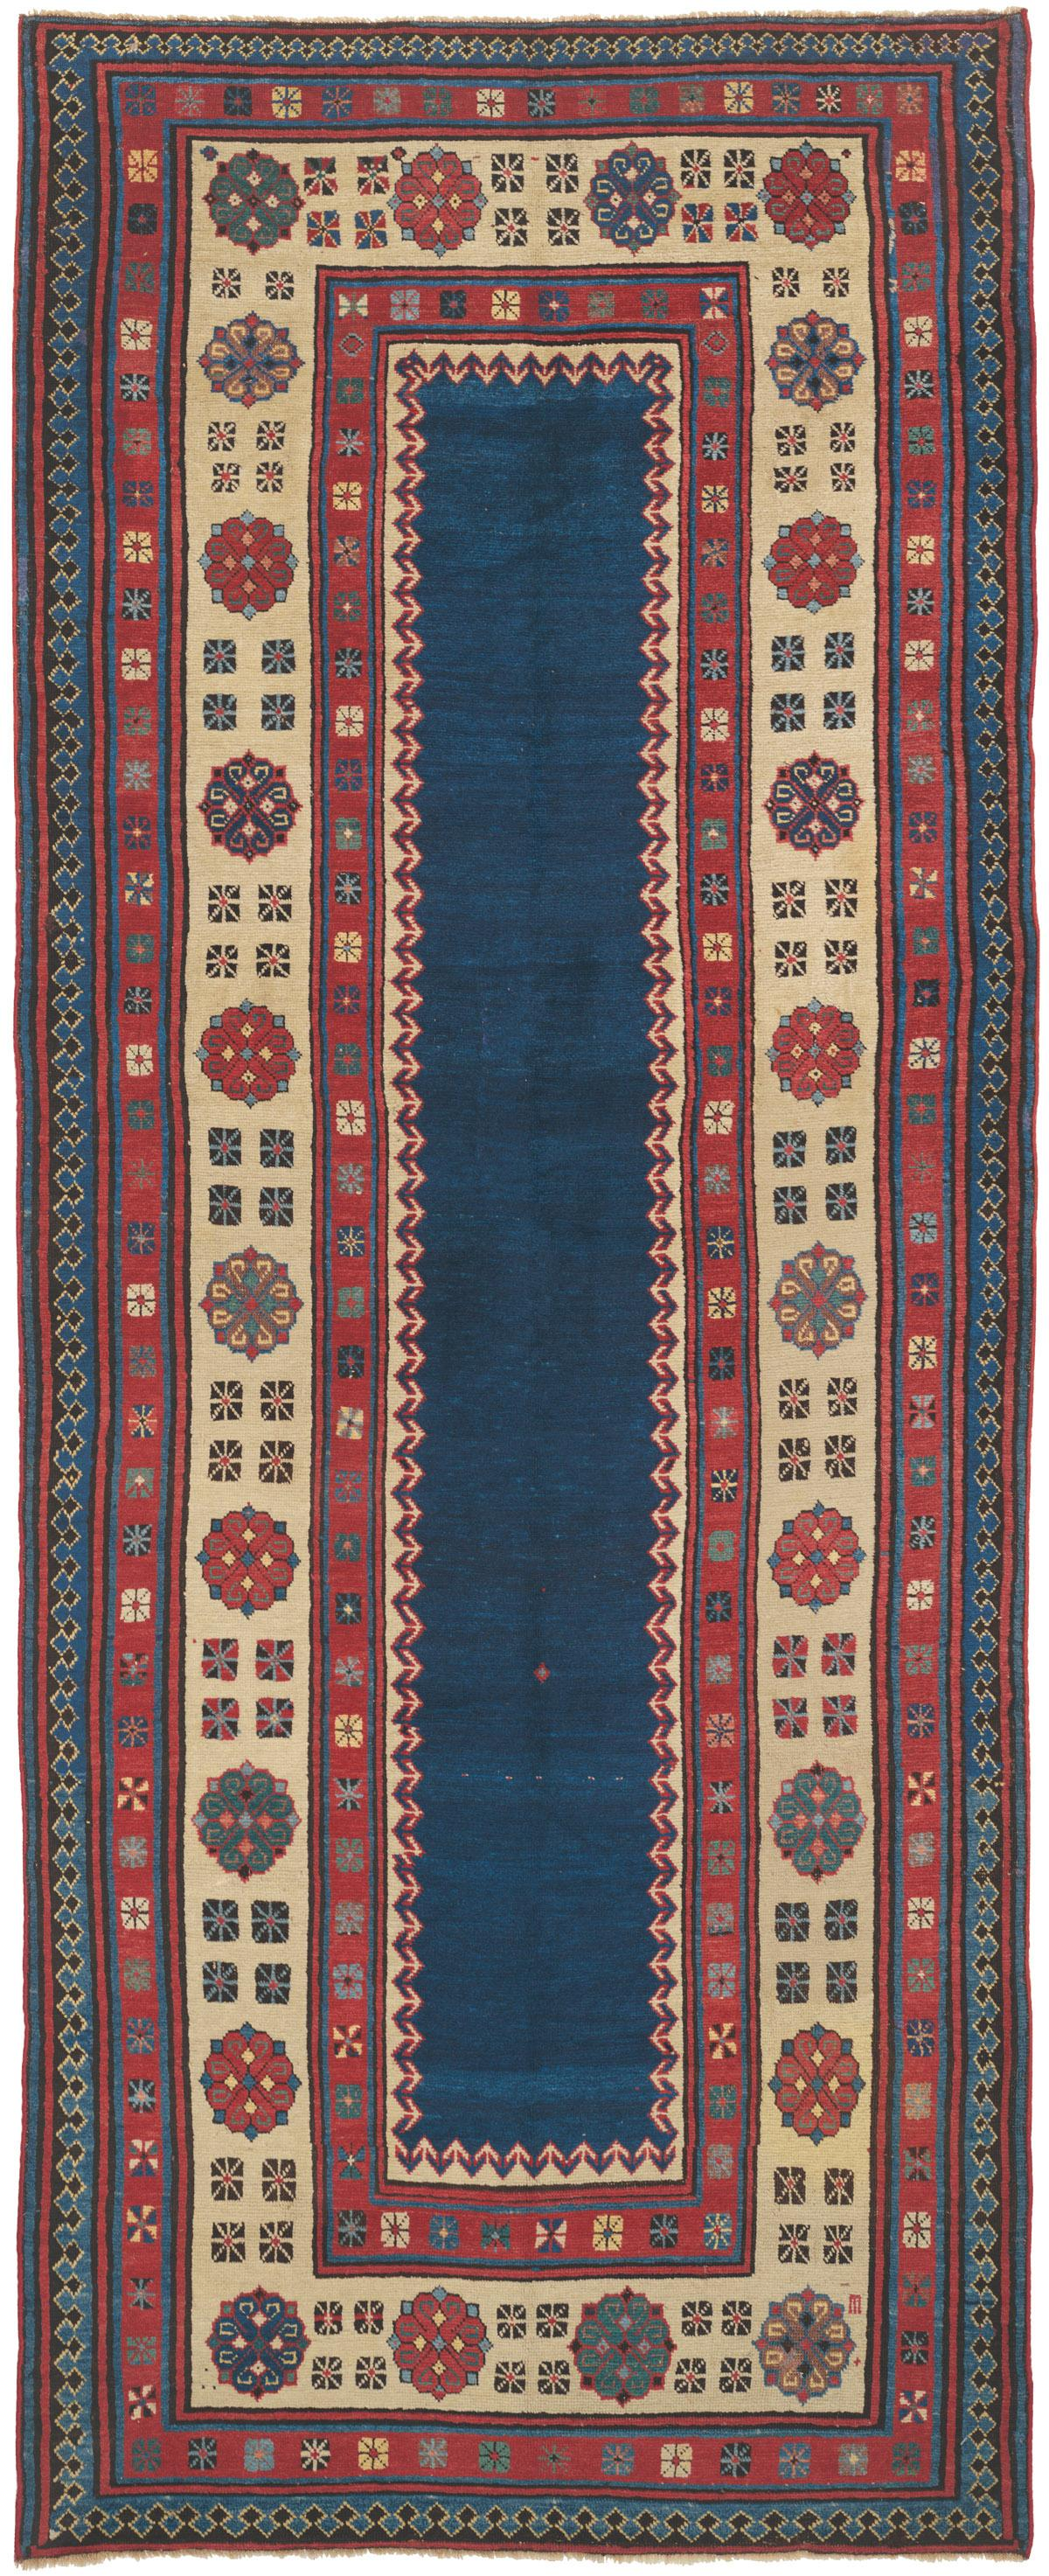 Talish southeast caucasian antique rug claremont rug for Southern crafted homes inventory